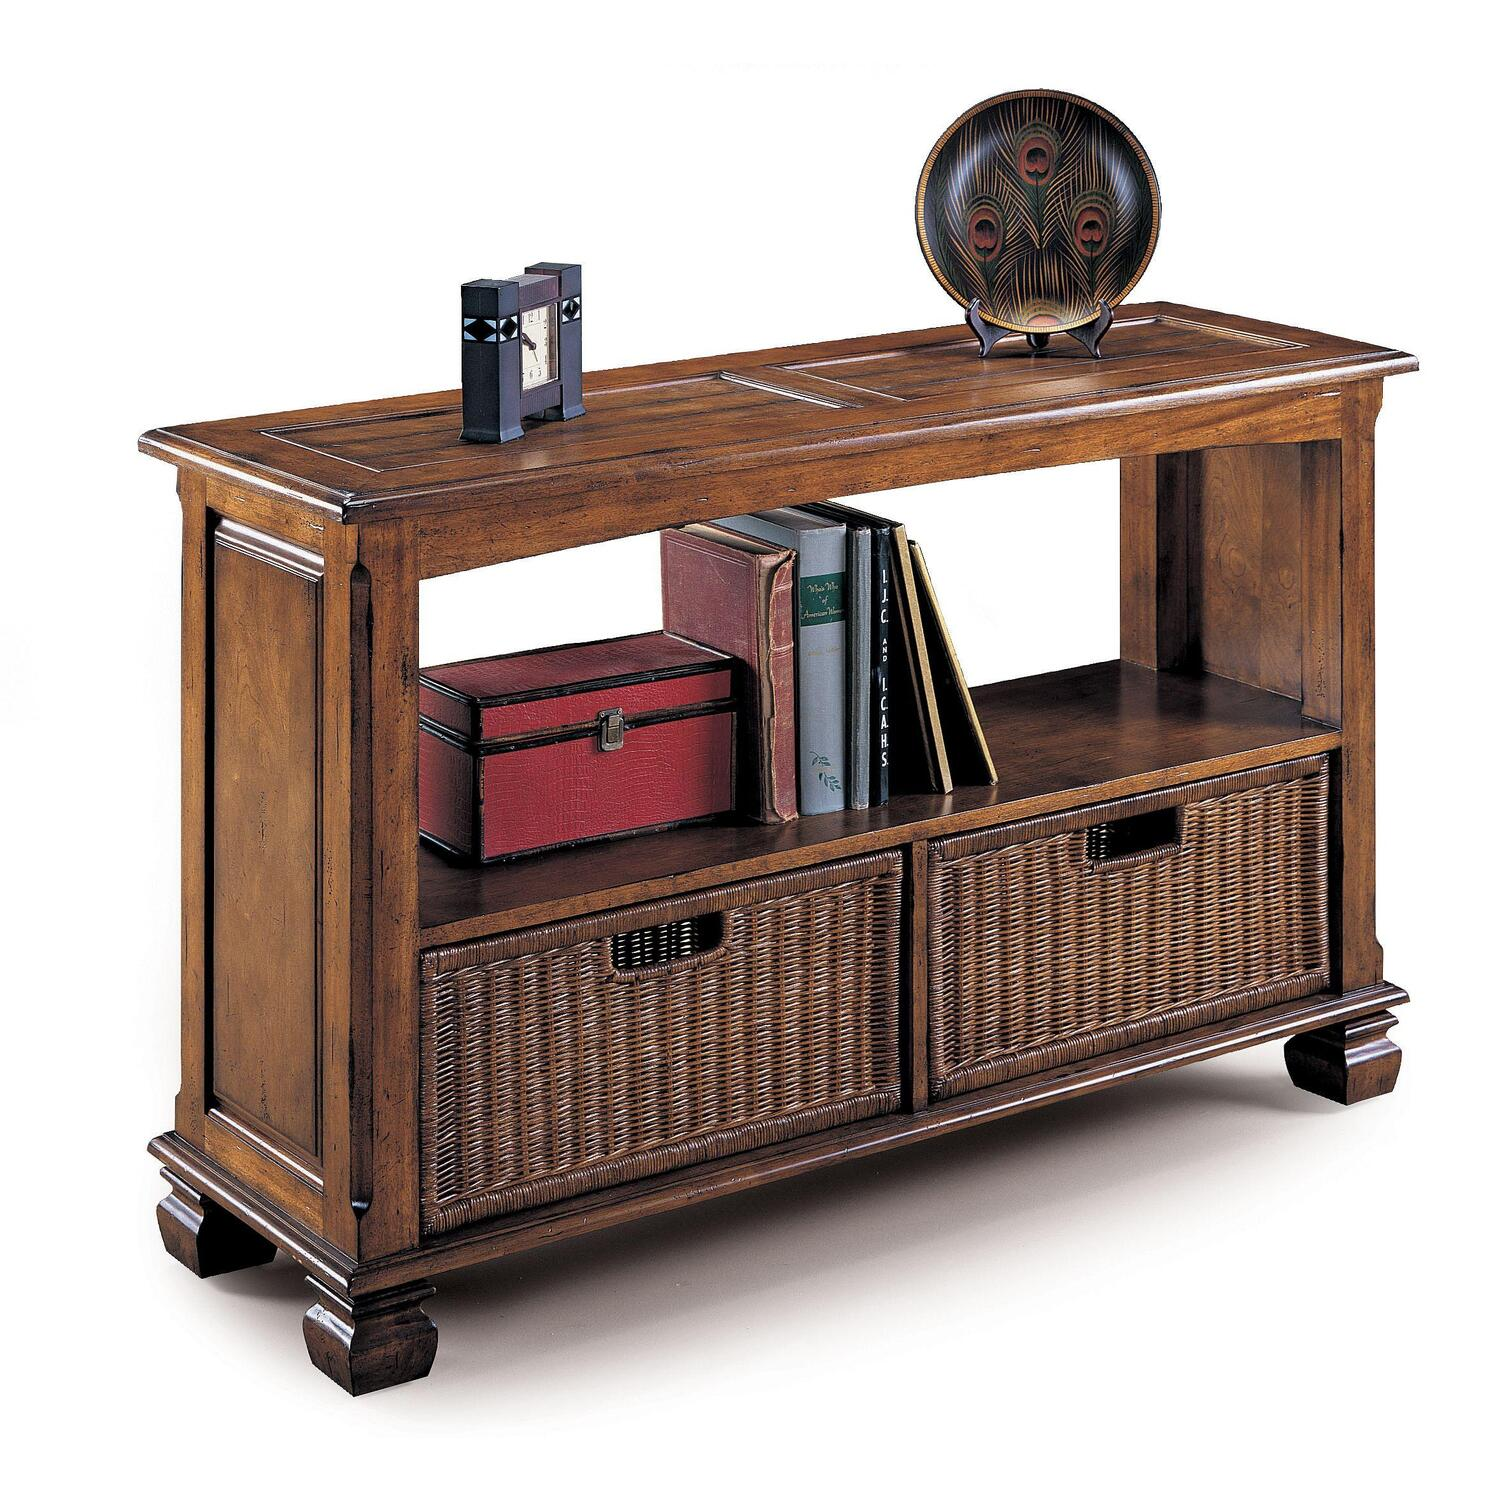 Lane surrey sofa table with storage baskets by oj commerce for Sofa table storage